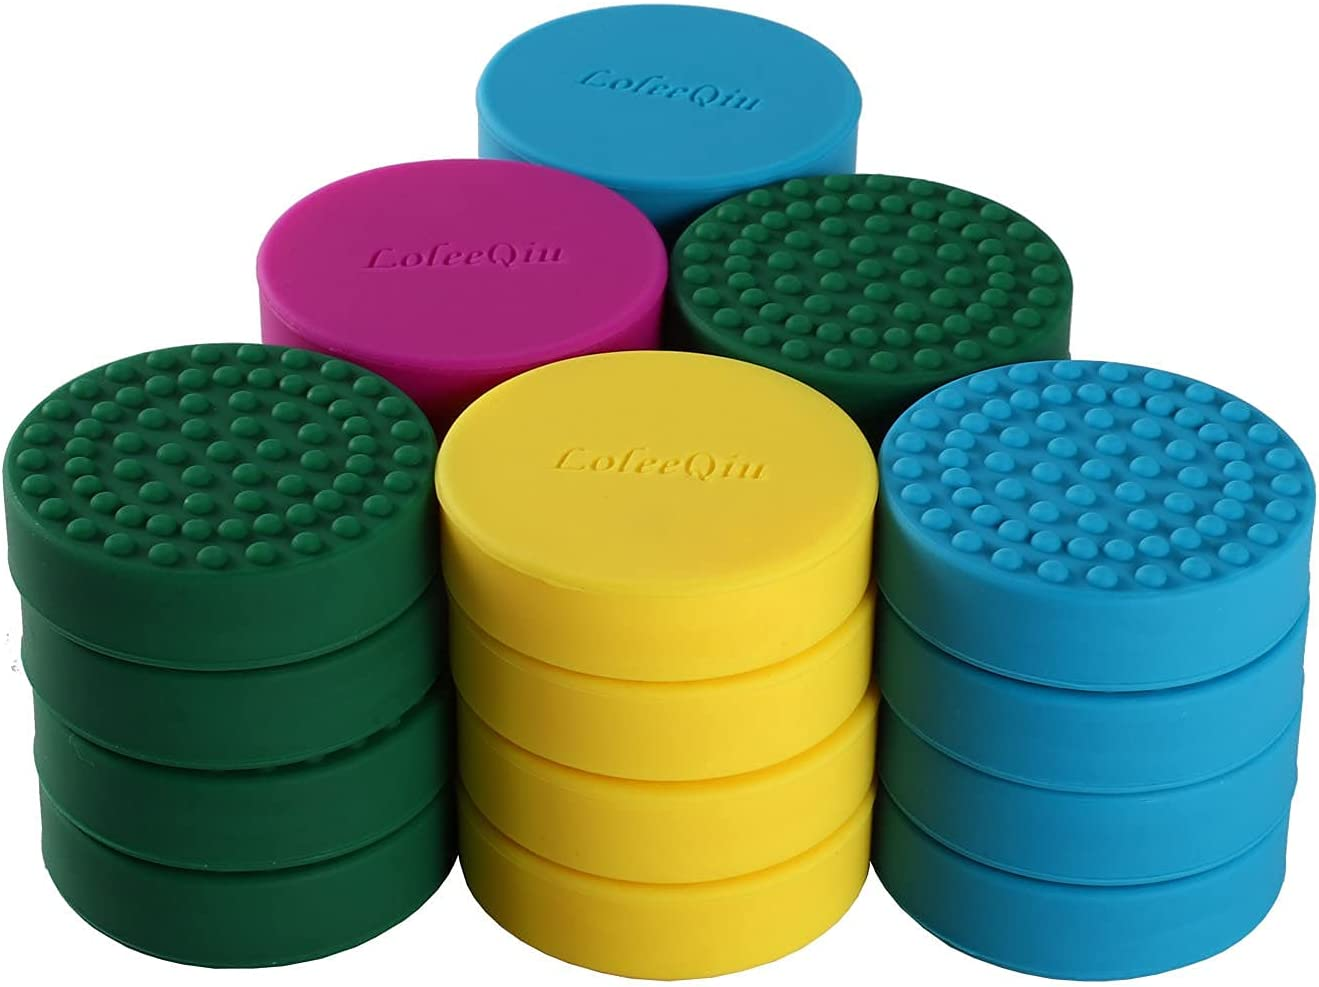 LoleeQiu 24 Pack Invisible Pot Feet, Solid Silicone Pot Feet Risers with Enhanced Non-Slip Surface Grip for Indoor & Outdoor Planters, Lifters for Heavy Garden Pots,Colorful.